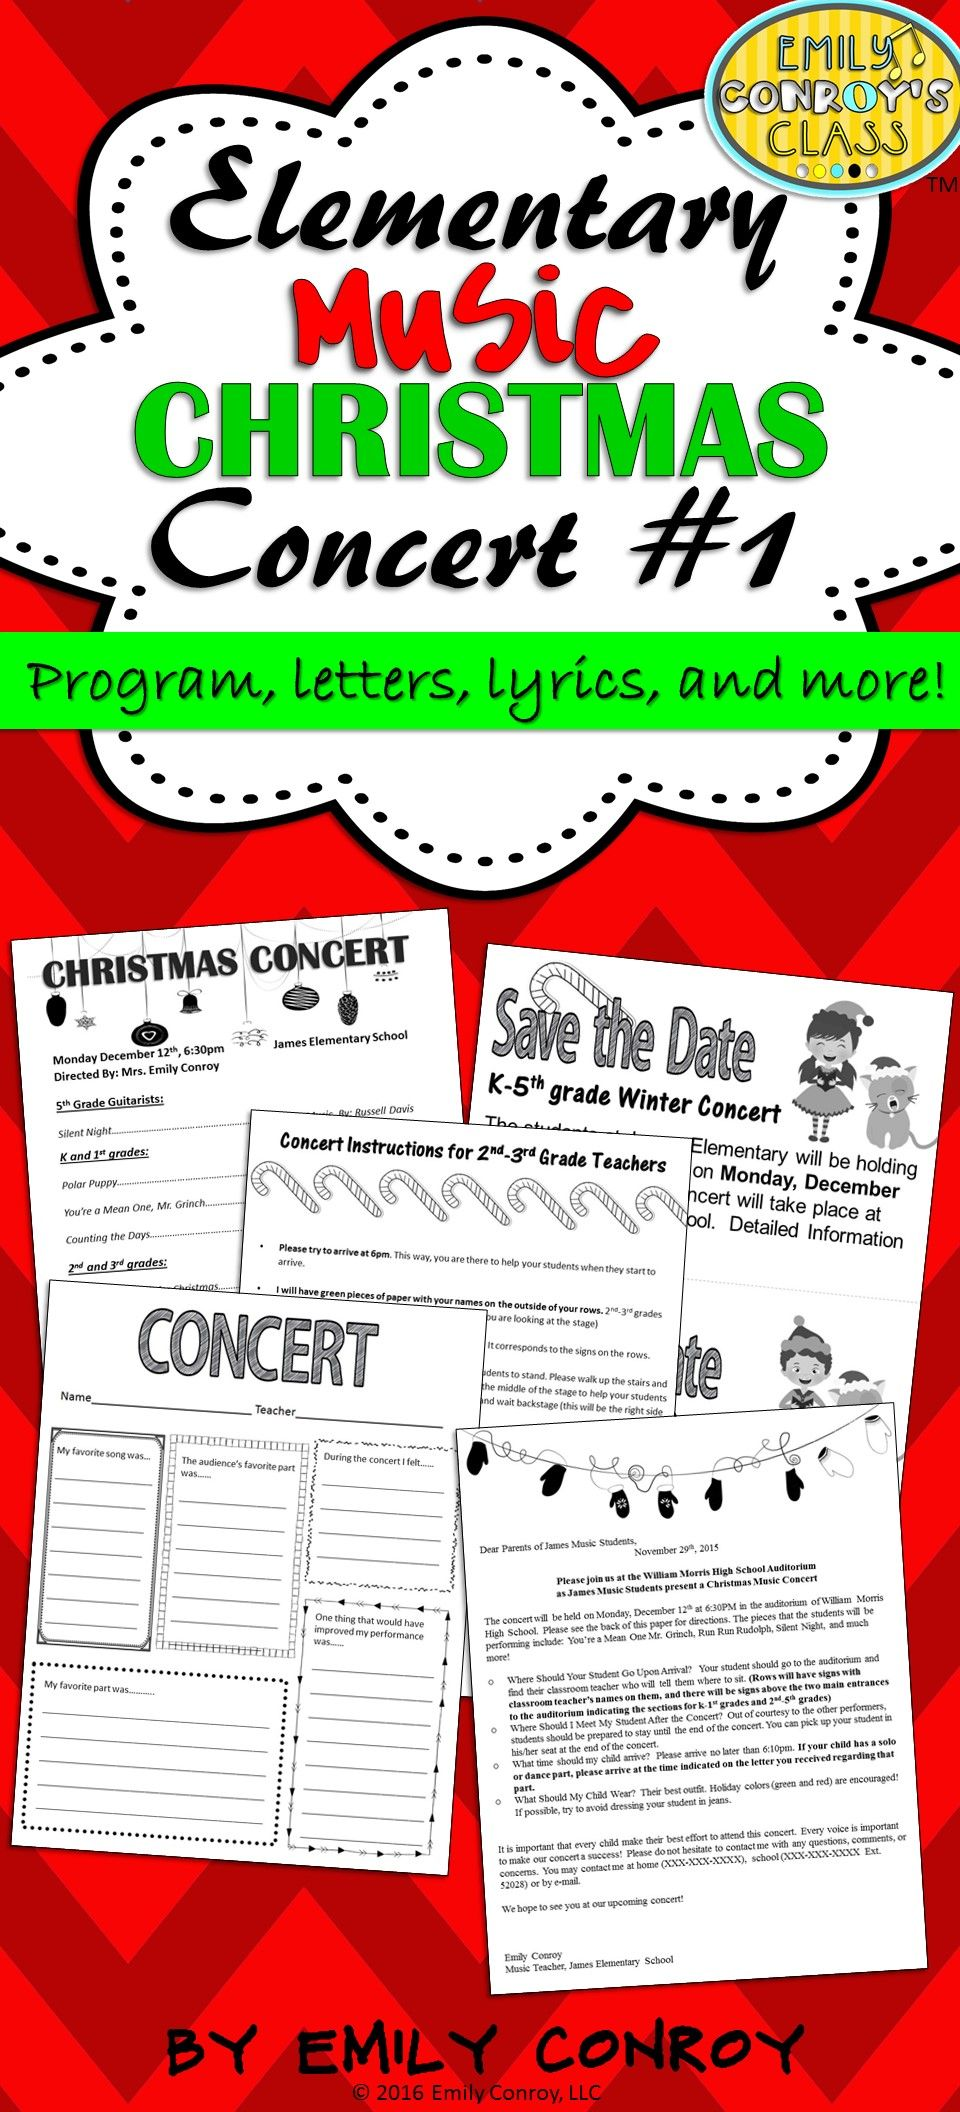 elementary music christmas concert 1 program letters lyrics and more work work work. Black Bedroom Furniture Sets. Home Design Ideas